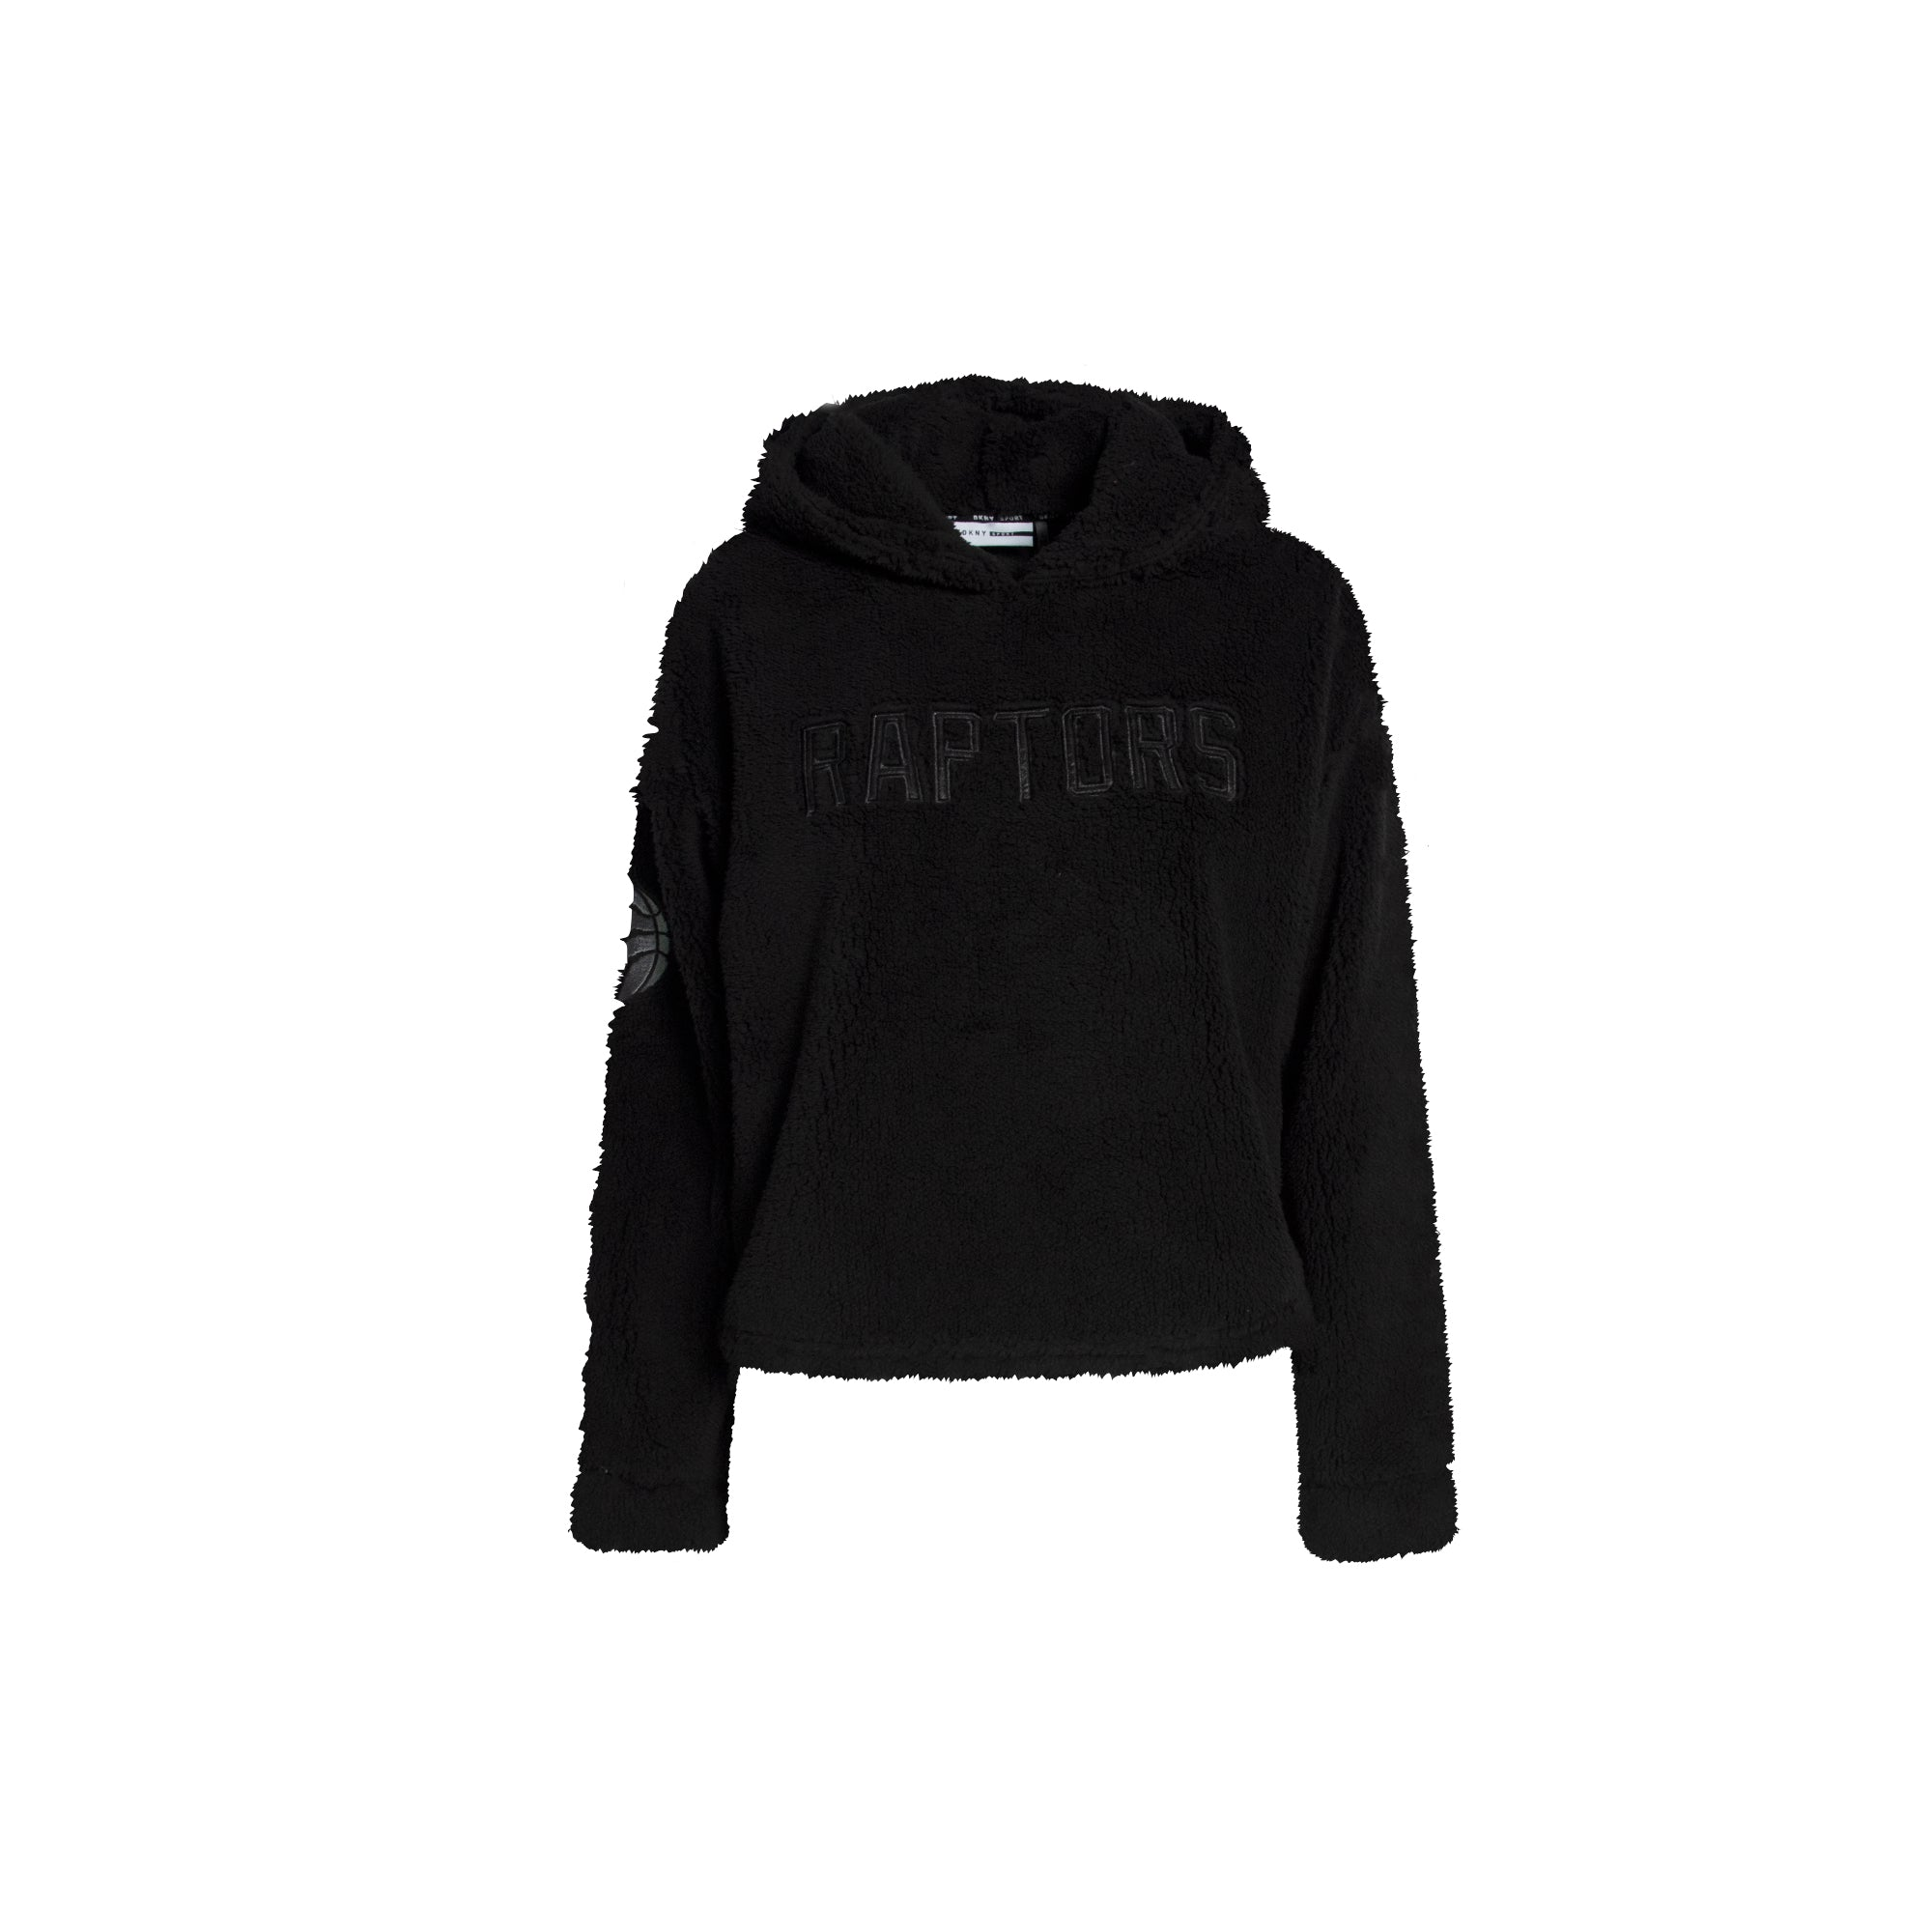 Raptors DKNY Ladies Cozy Hoody